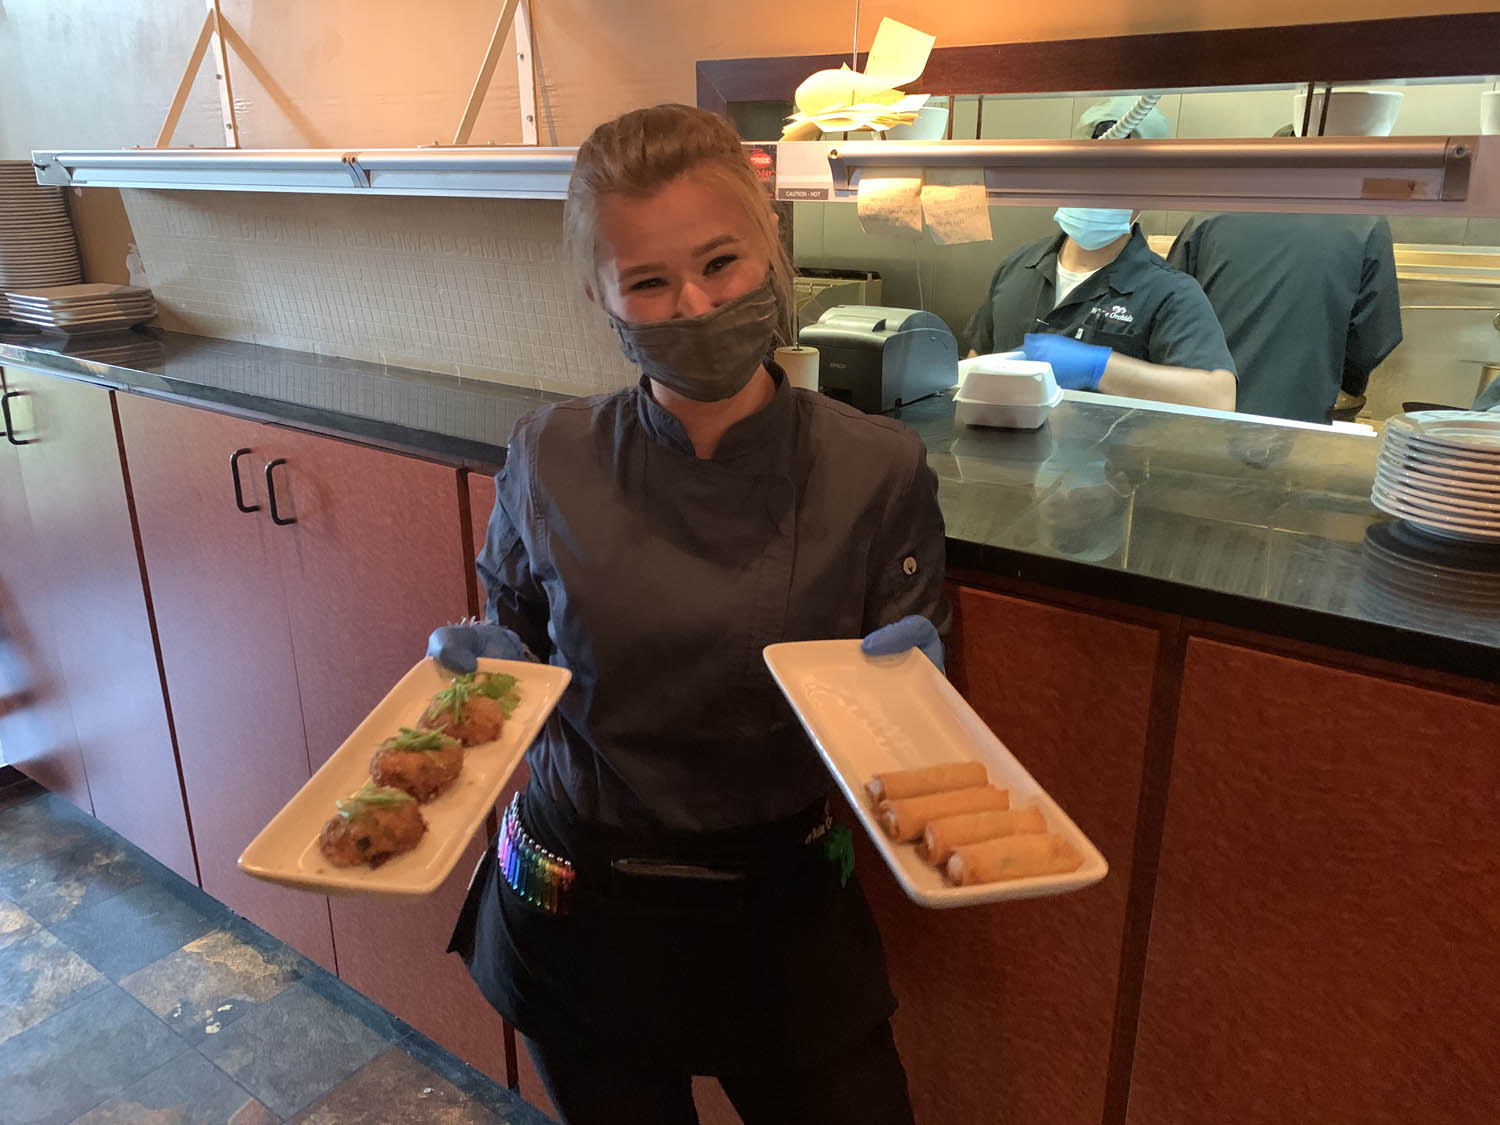 Waitress with Apps